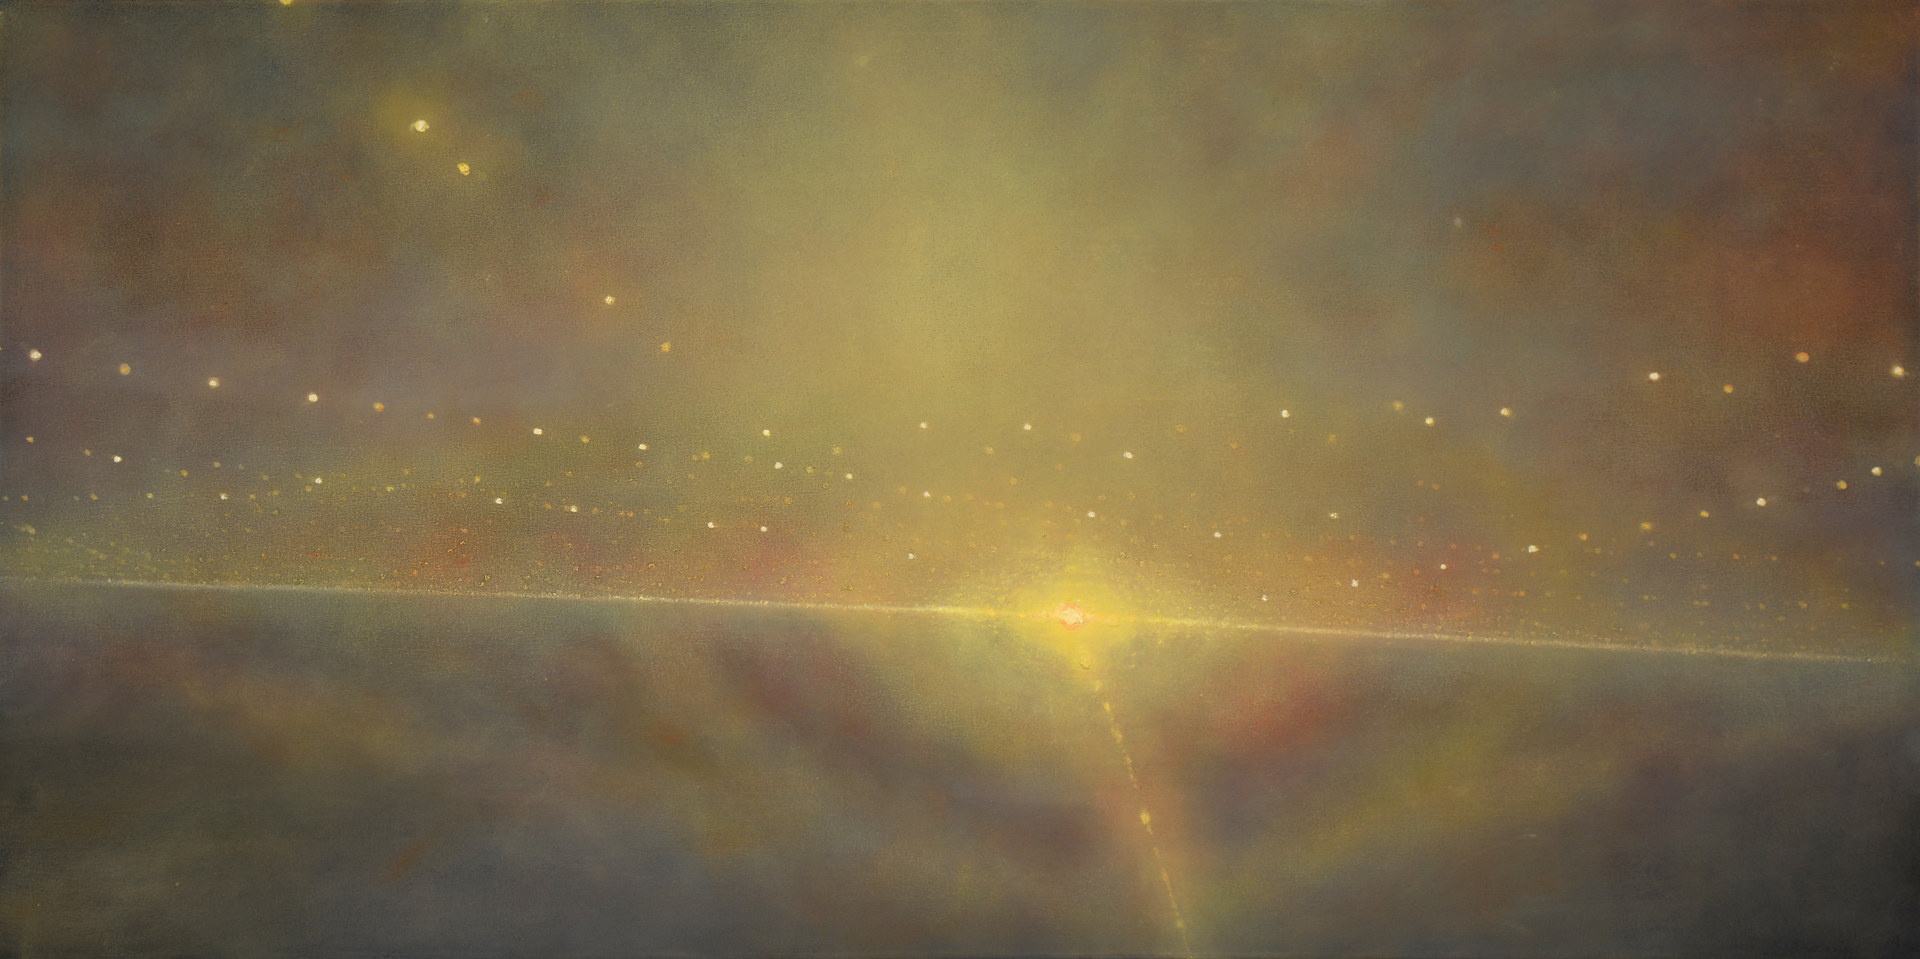 Oil painting SEARCHLIGHT # 2 by Dennis Ekstedt